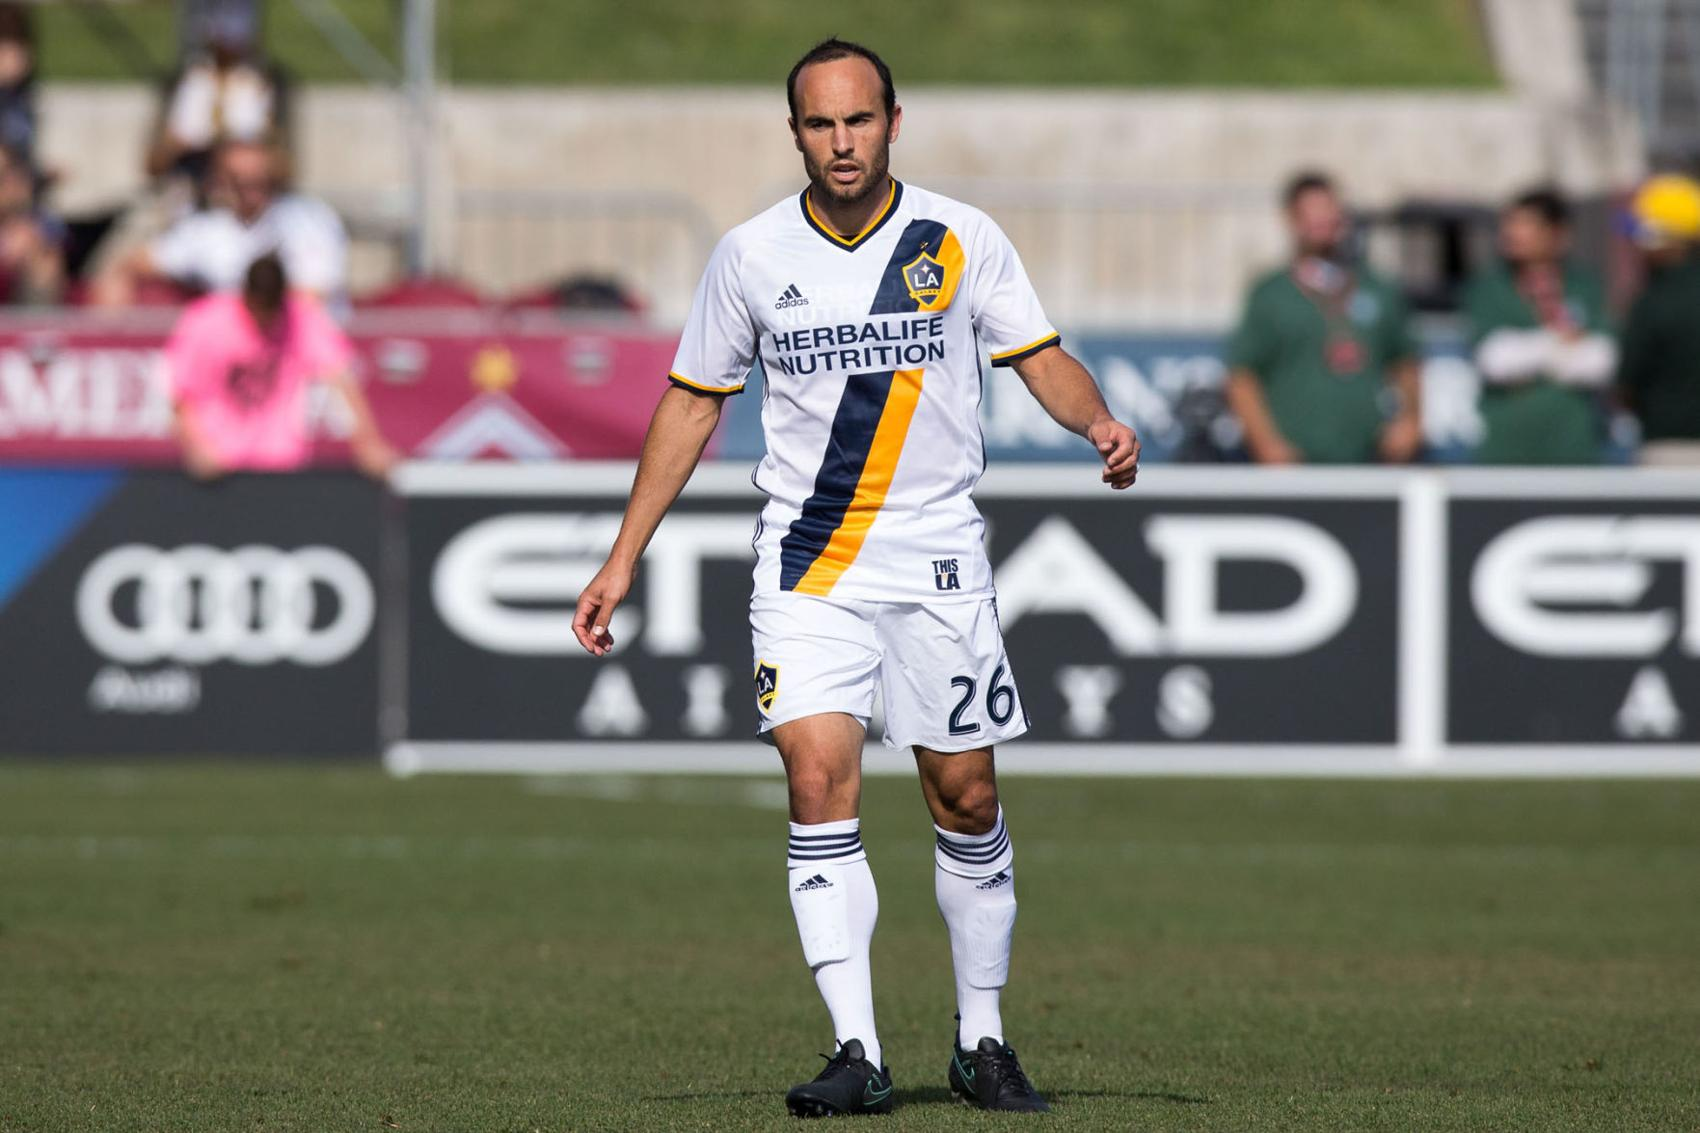 5b298afc36c12.image_ ATLANTA UNITED ALERT: LANDON DONOVAN IN THE FIRST HALF AGAINST THE COLORADO RAPIDS DICK'S SPORTING GOODS PARK DURING HIS PLAYING DAYS WITH THE LOS ANGELES GALAXY IN 2016